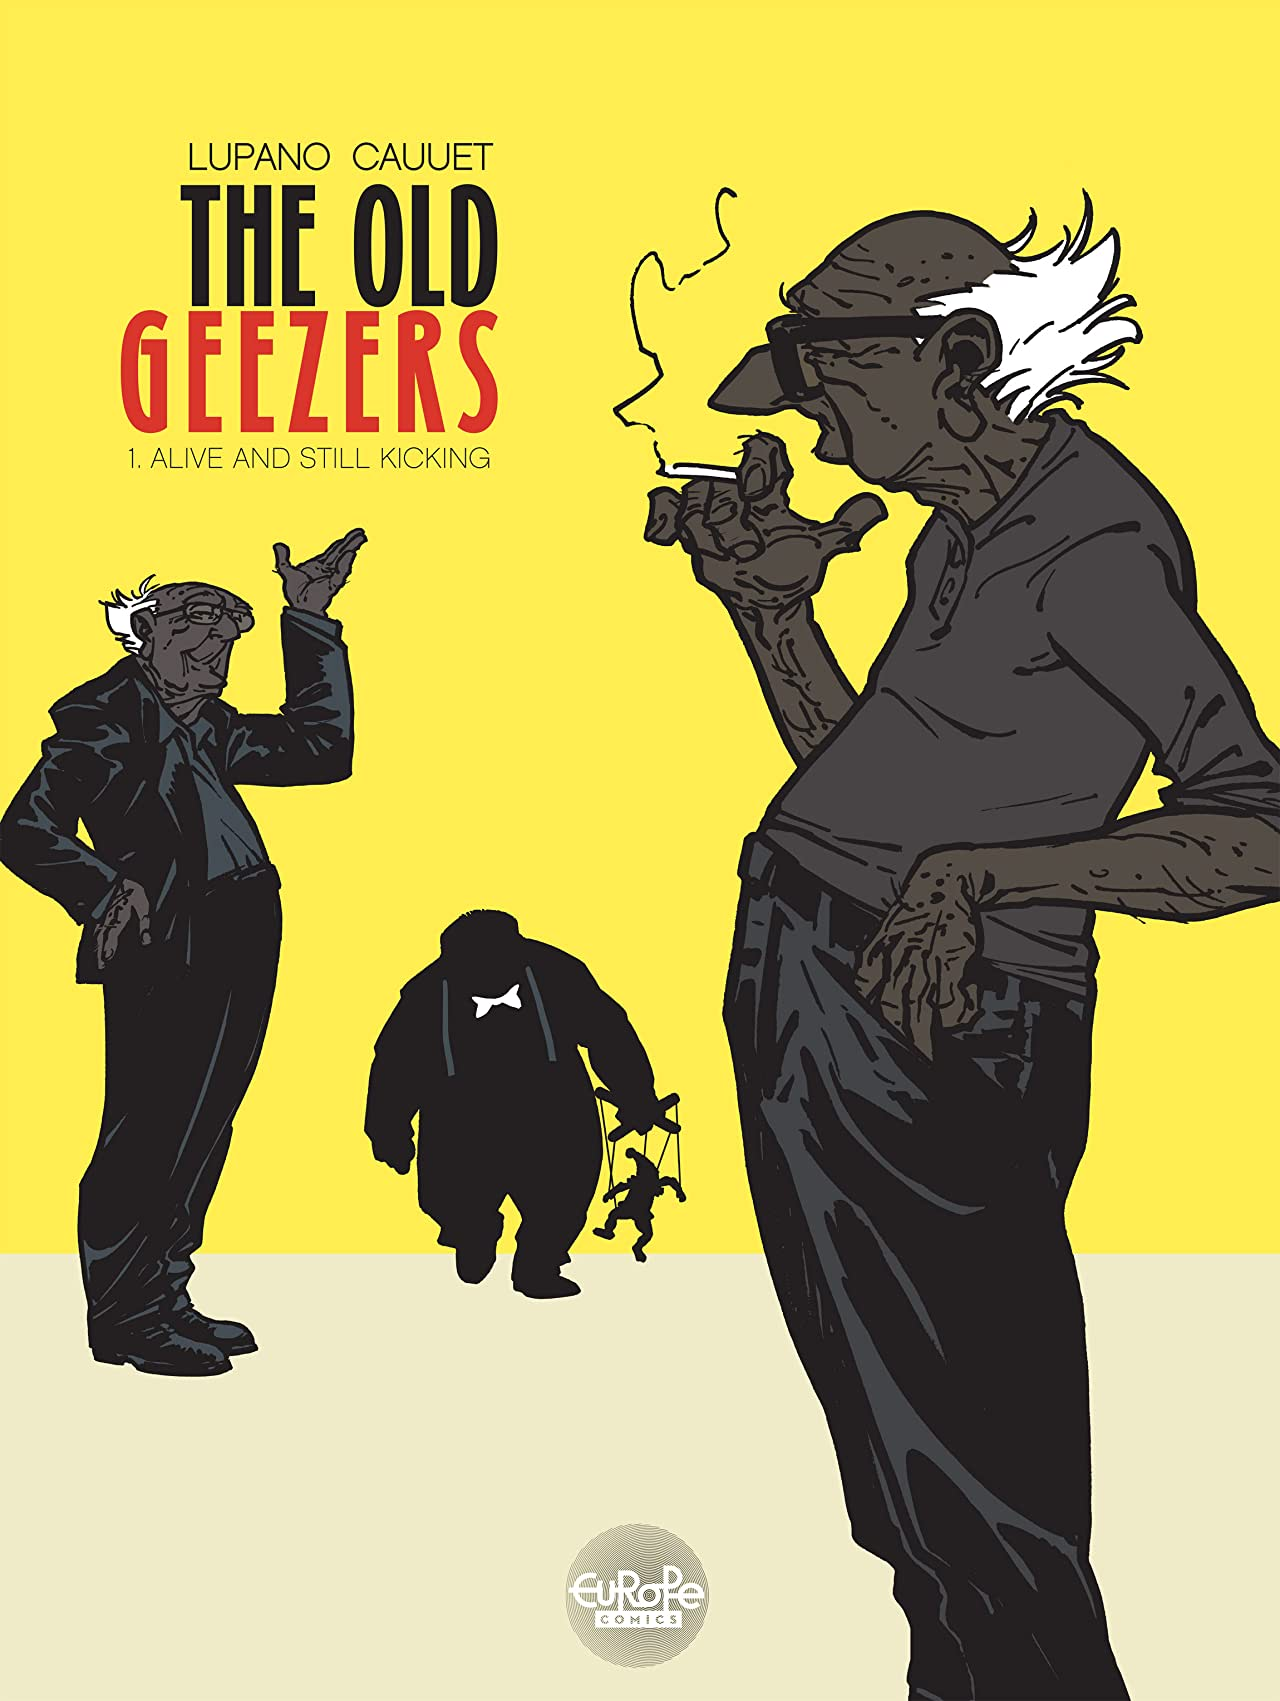 The Old Geezers Vol. 1: Alive and still kicking